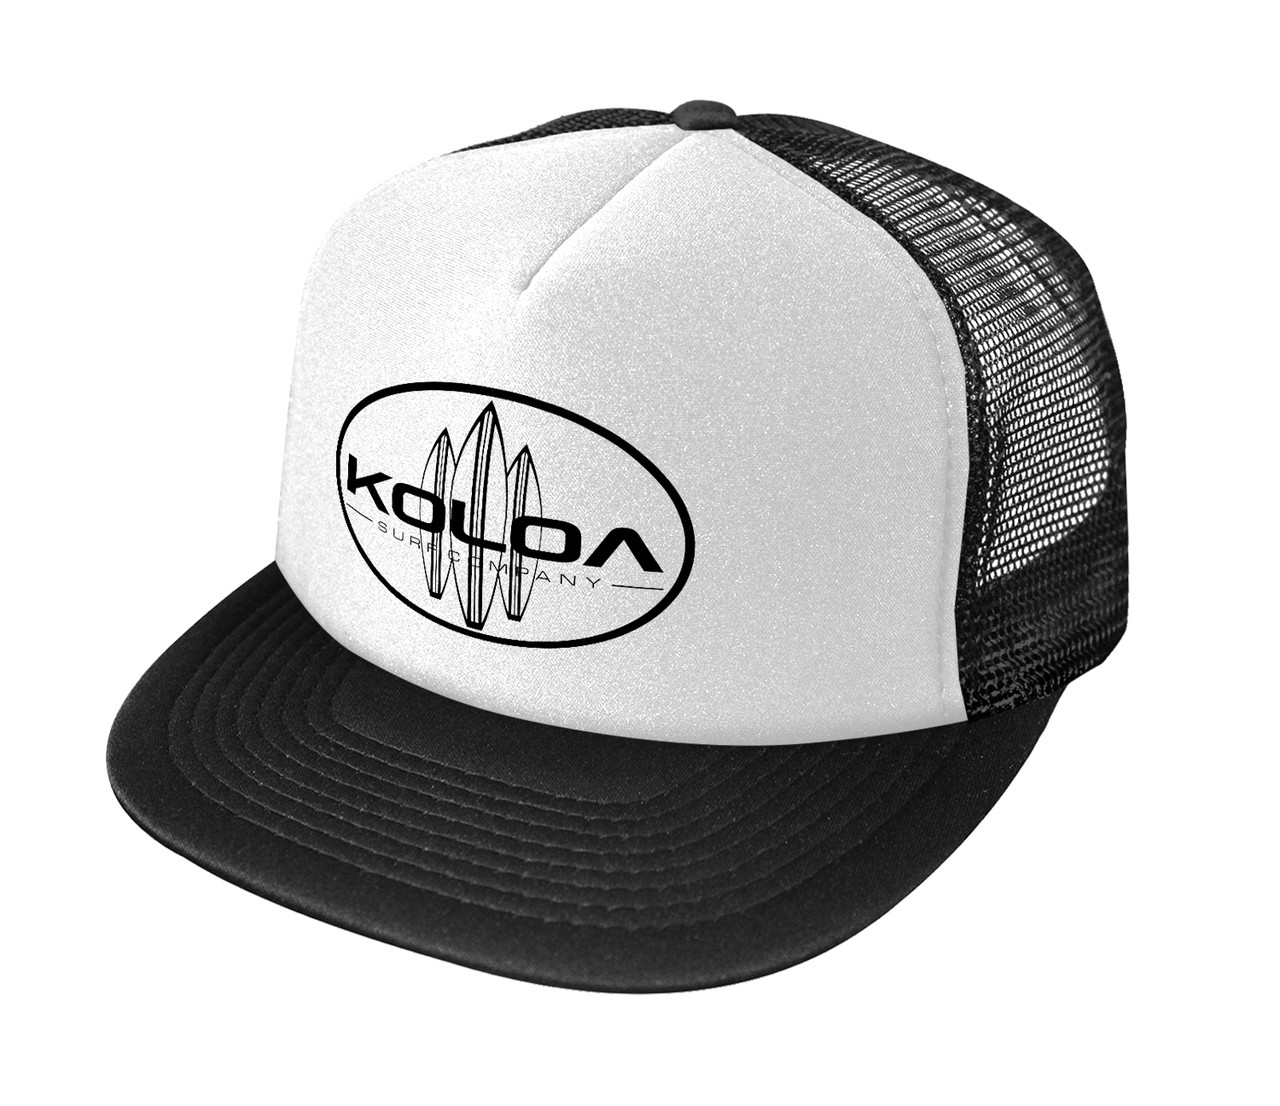 a8d7a69b6 Koloa Surf Screen Printed Classic Surfboards Poly-Foam Mesh Snapback High  Profile Trucker Hat - White / Black logo